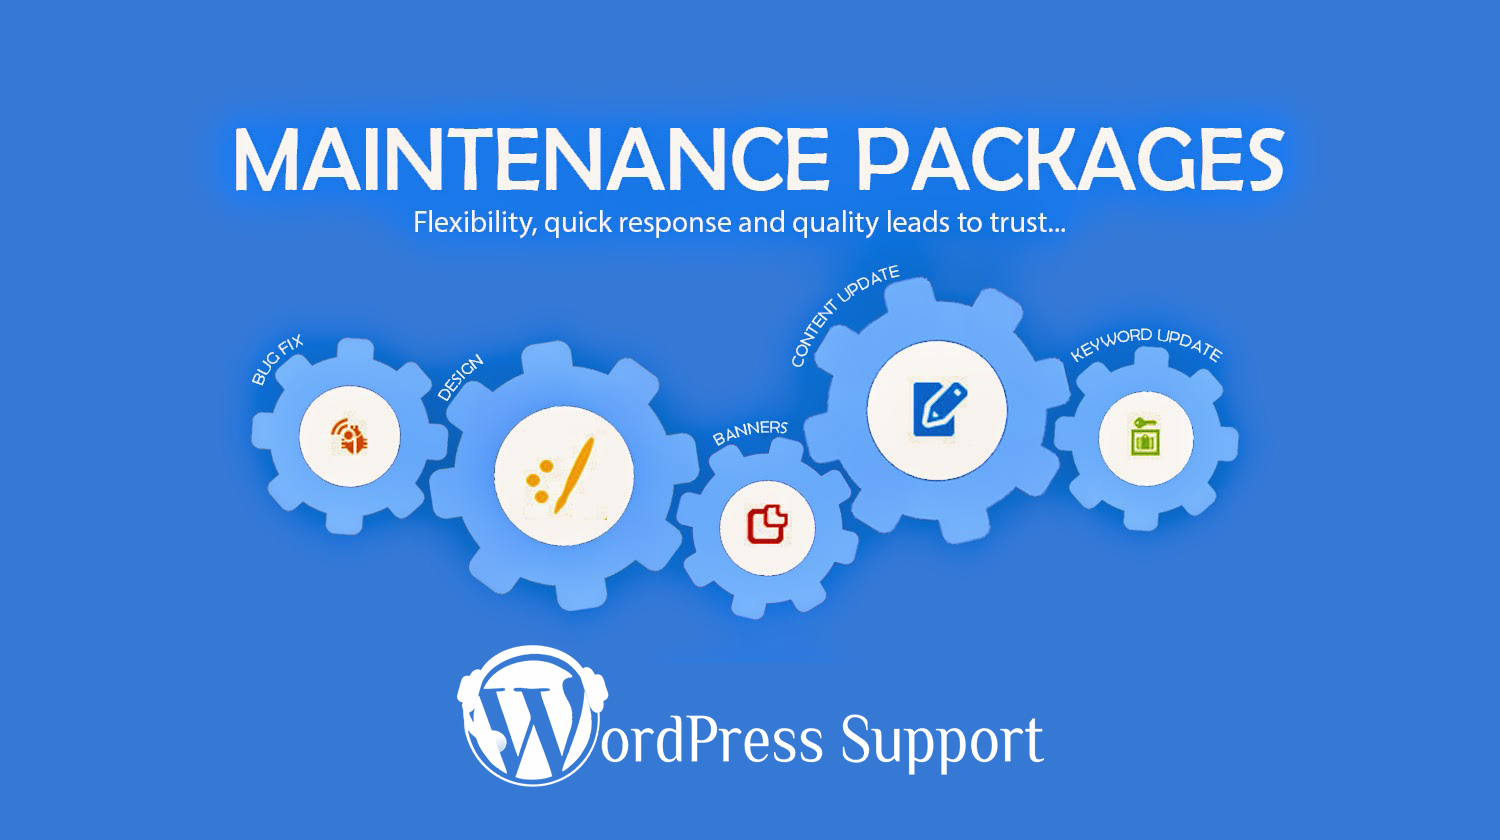 WordPress Personal Support & Maintenance